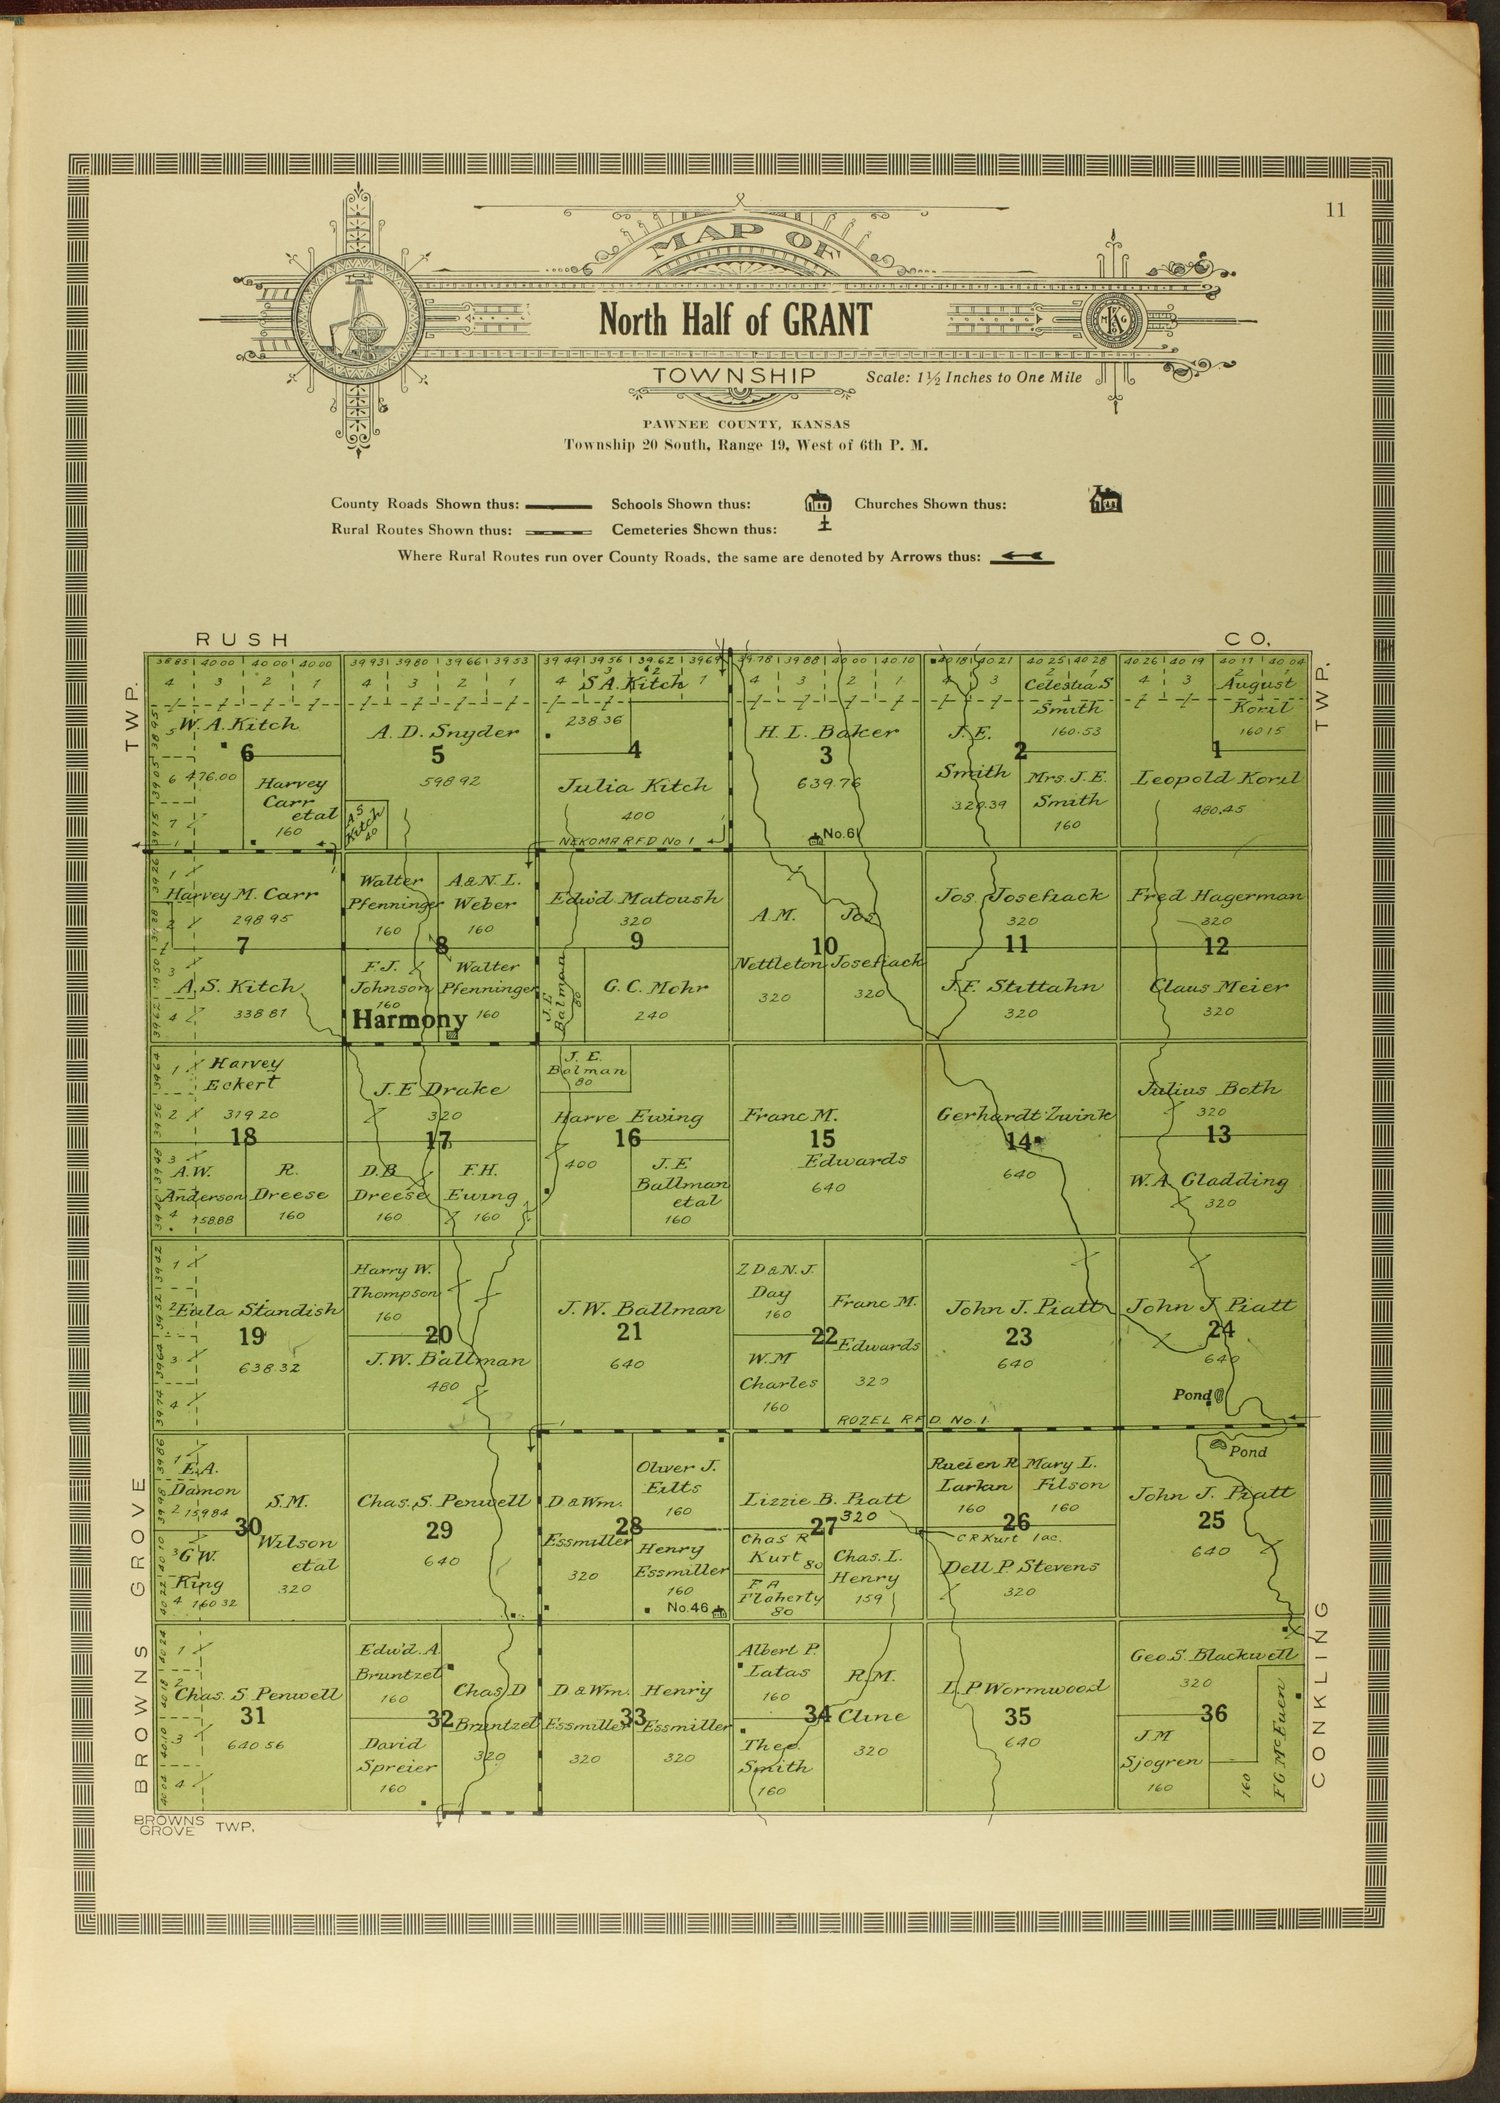 Atlas and plat book of Pawnee County, Kansas - 11